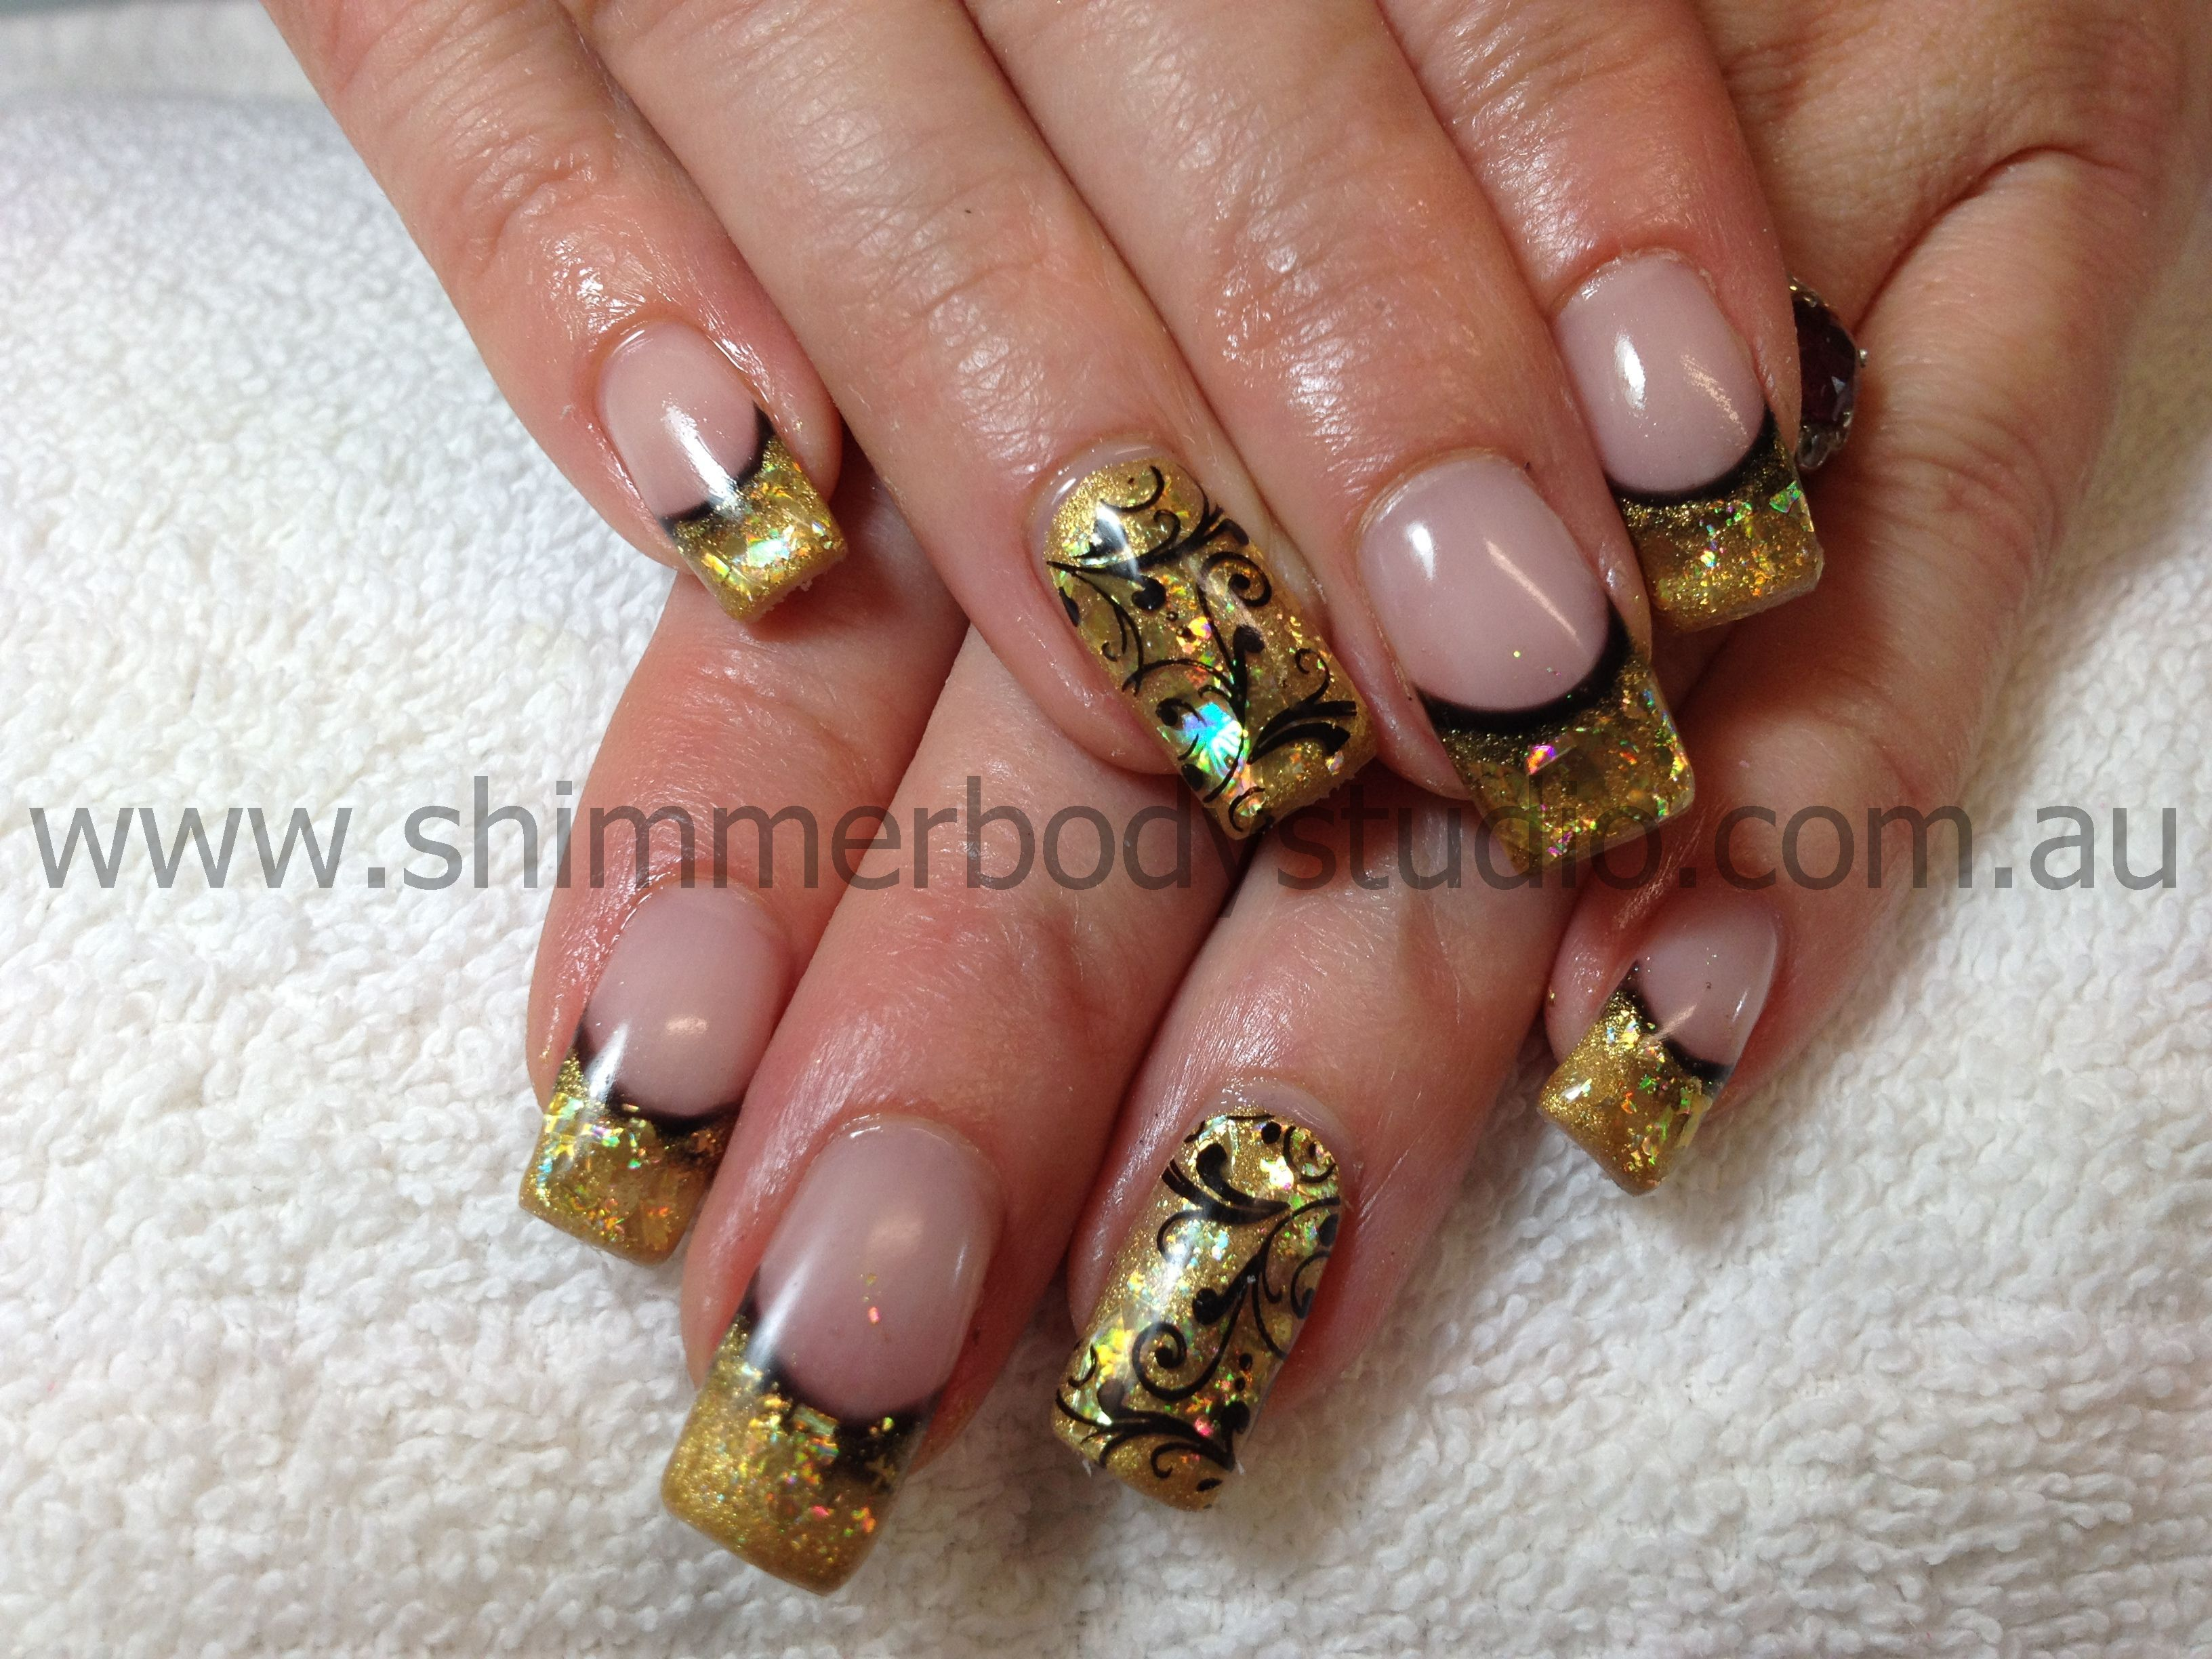 Gel nails, gold and black nails, glitter, konad stamping nail art ...